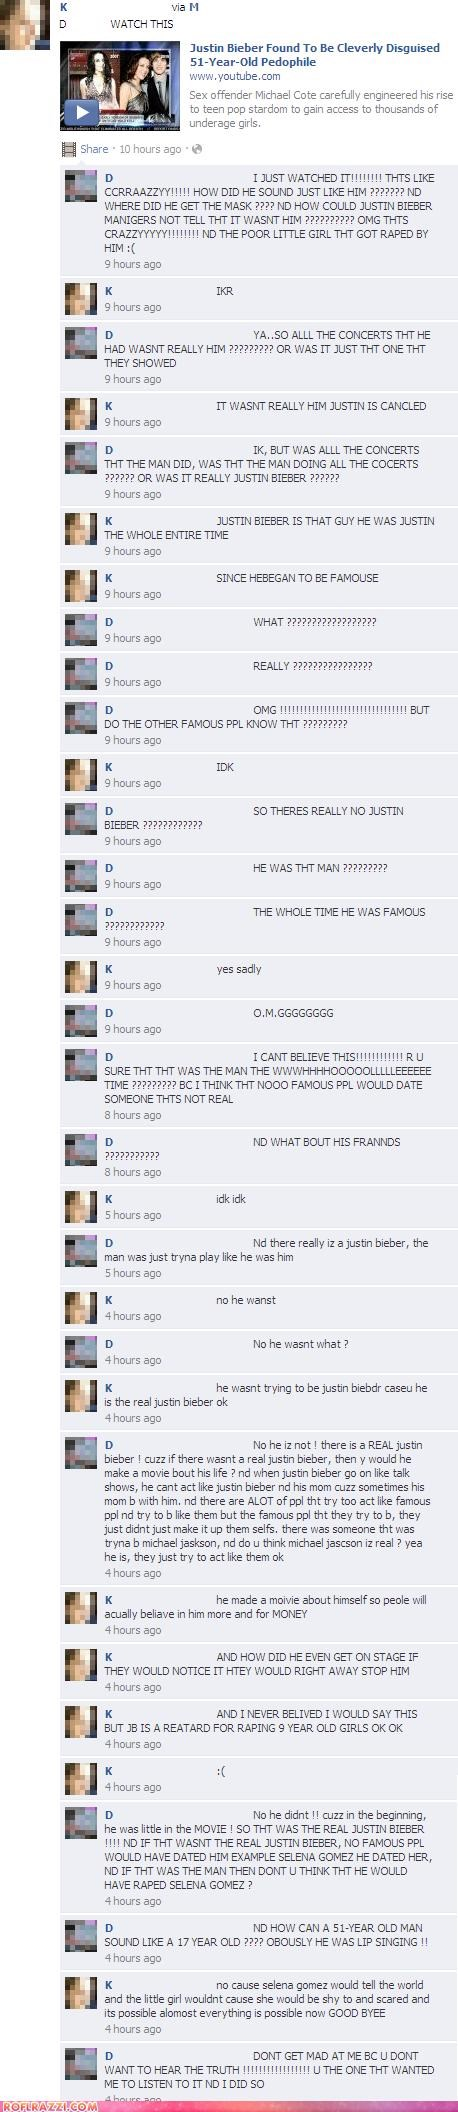 facebook FAIL funny Hall of Fame justin bieber - 5159948544